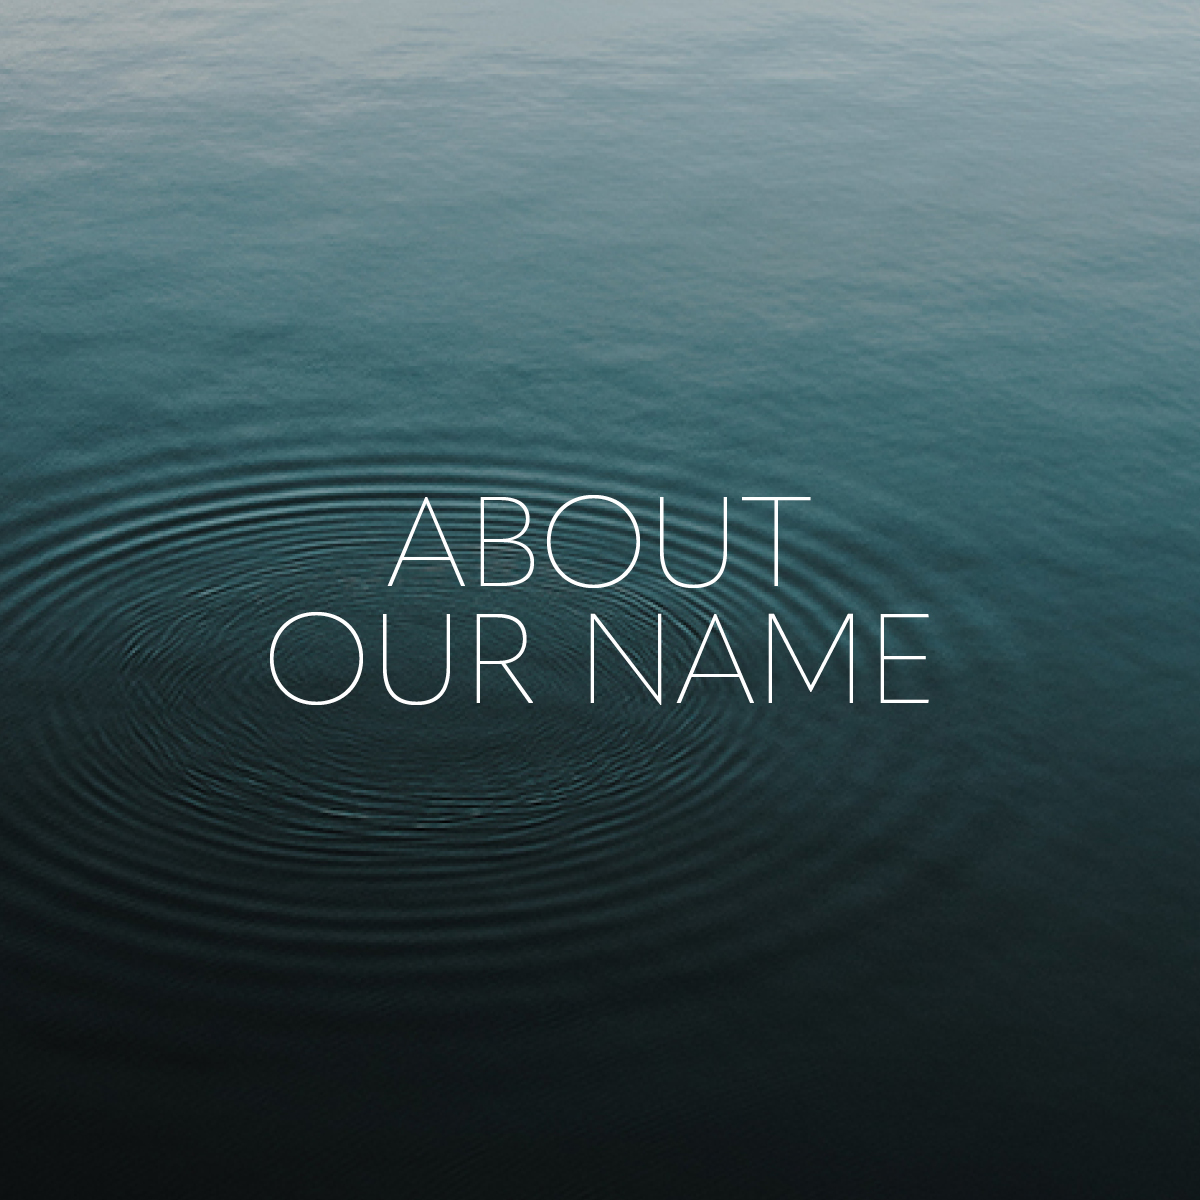 about_our_name.jpg